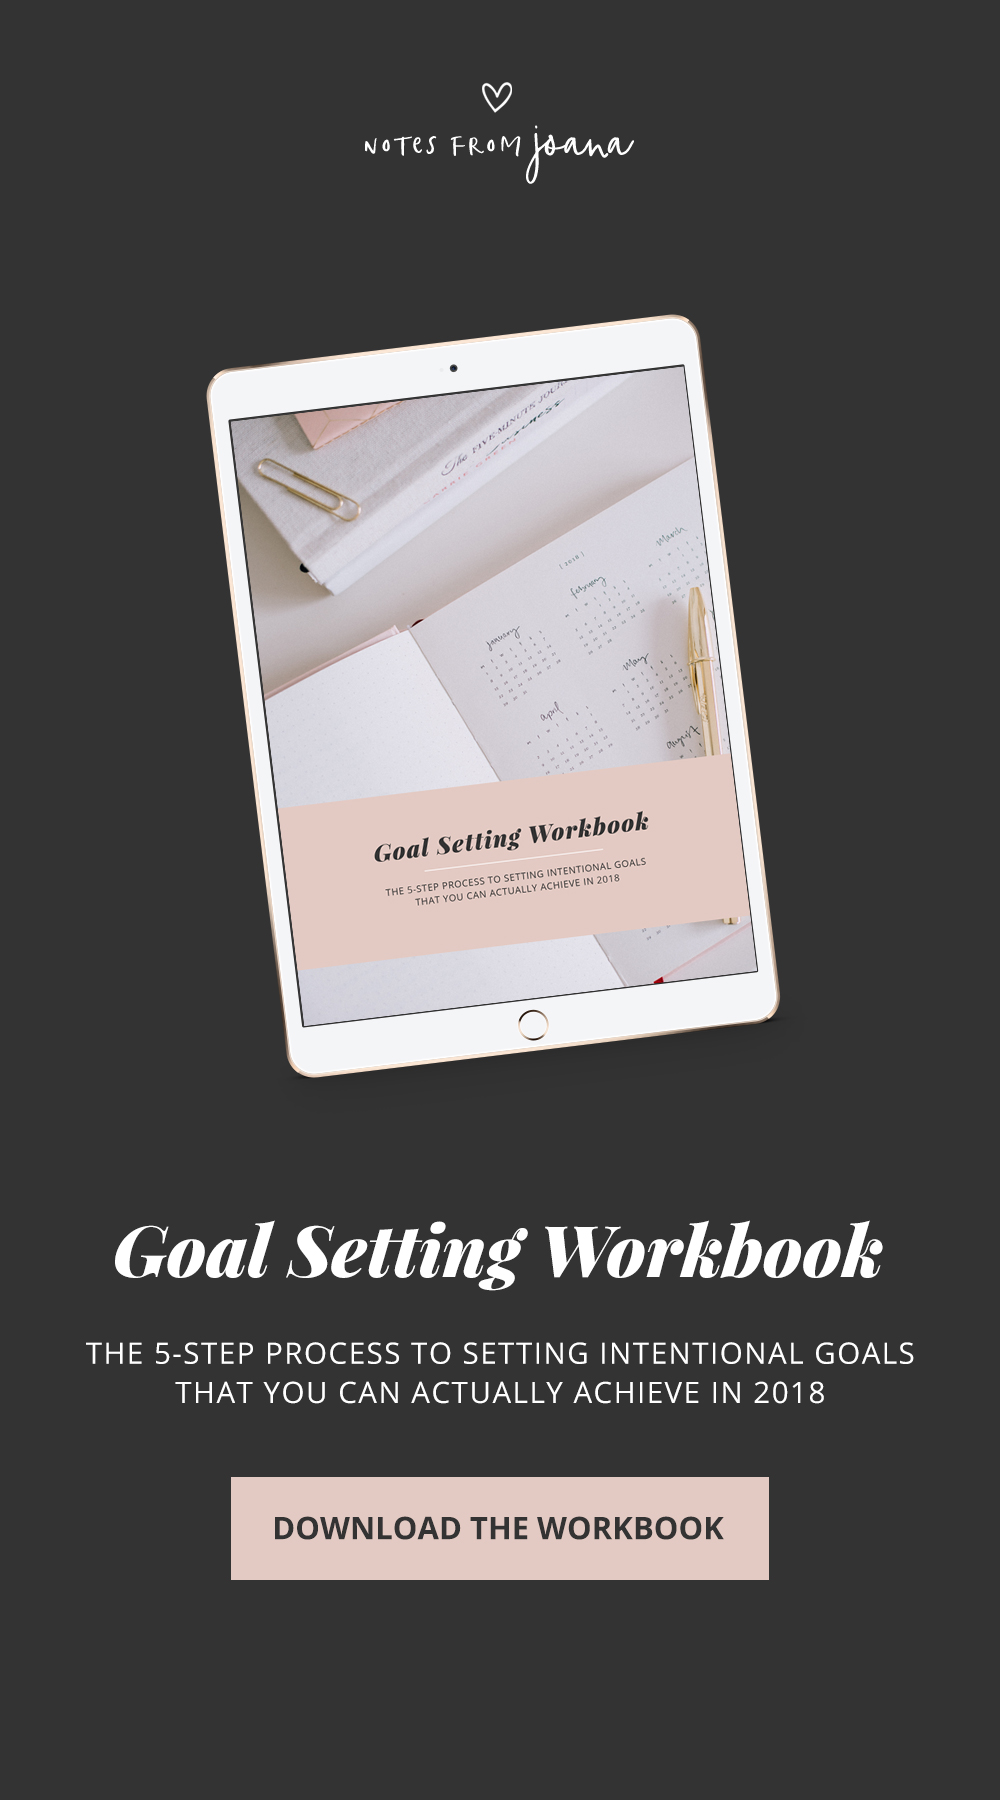 Workbooks goals workbook : How To Set Intentional Goals That You Can Actually Achieve In 2018